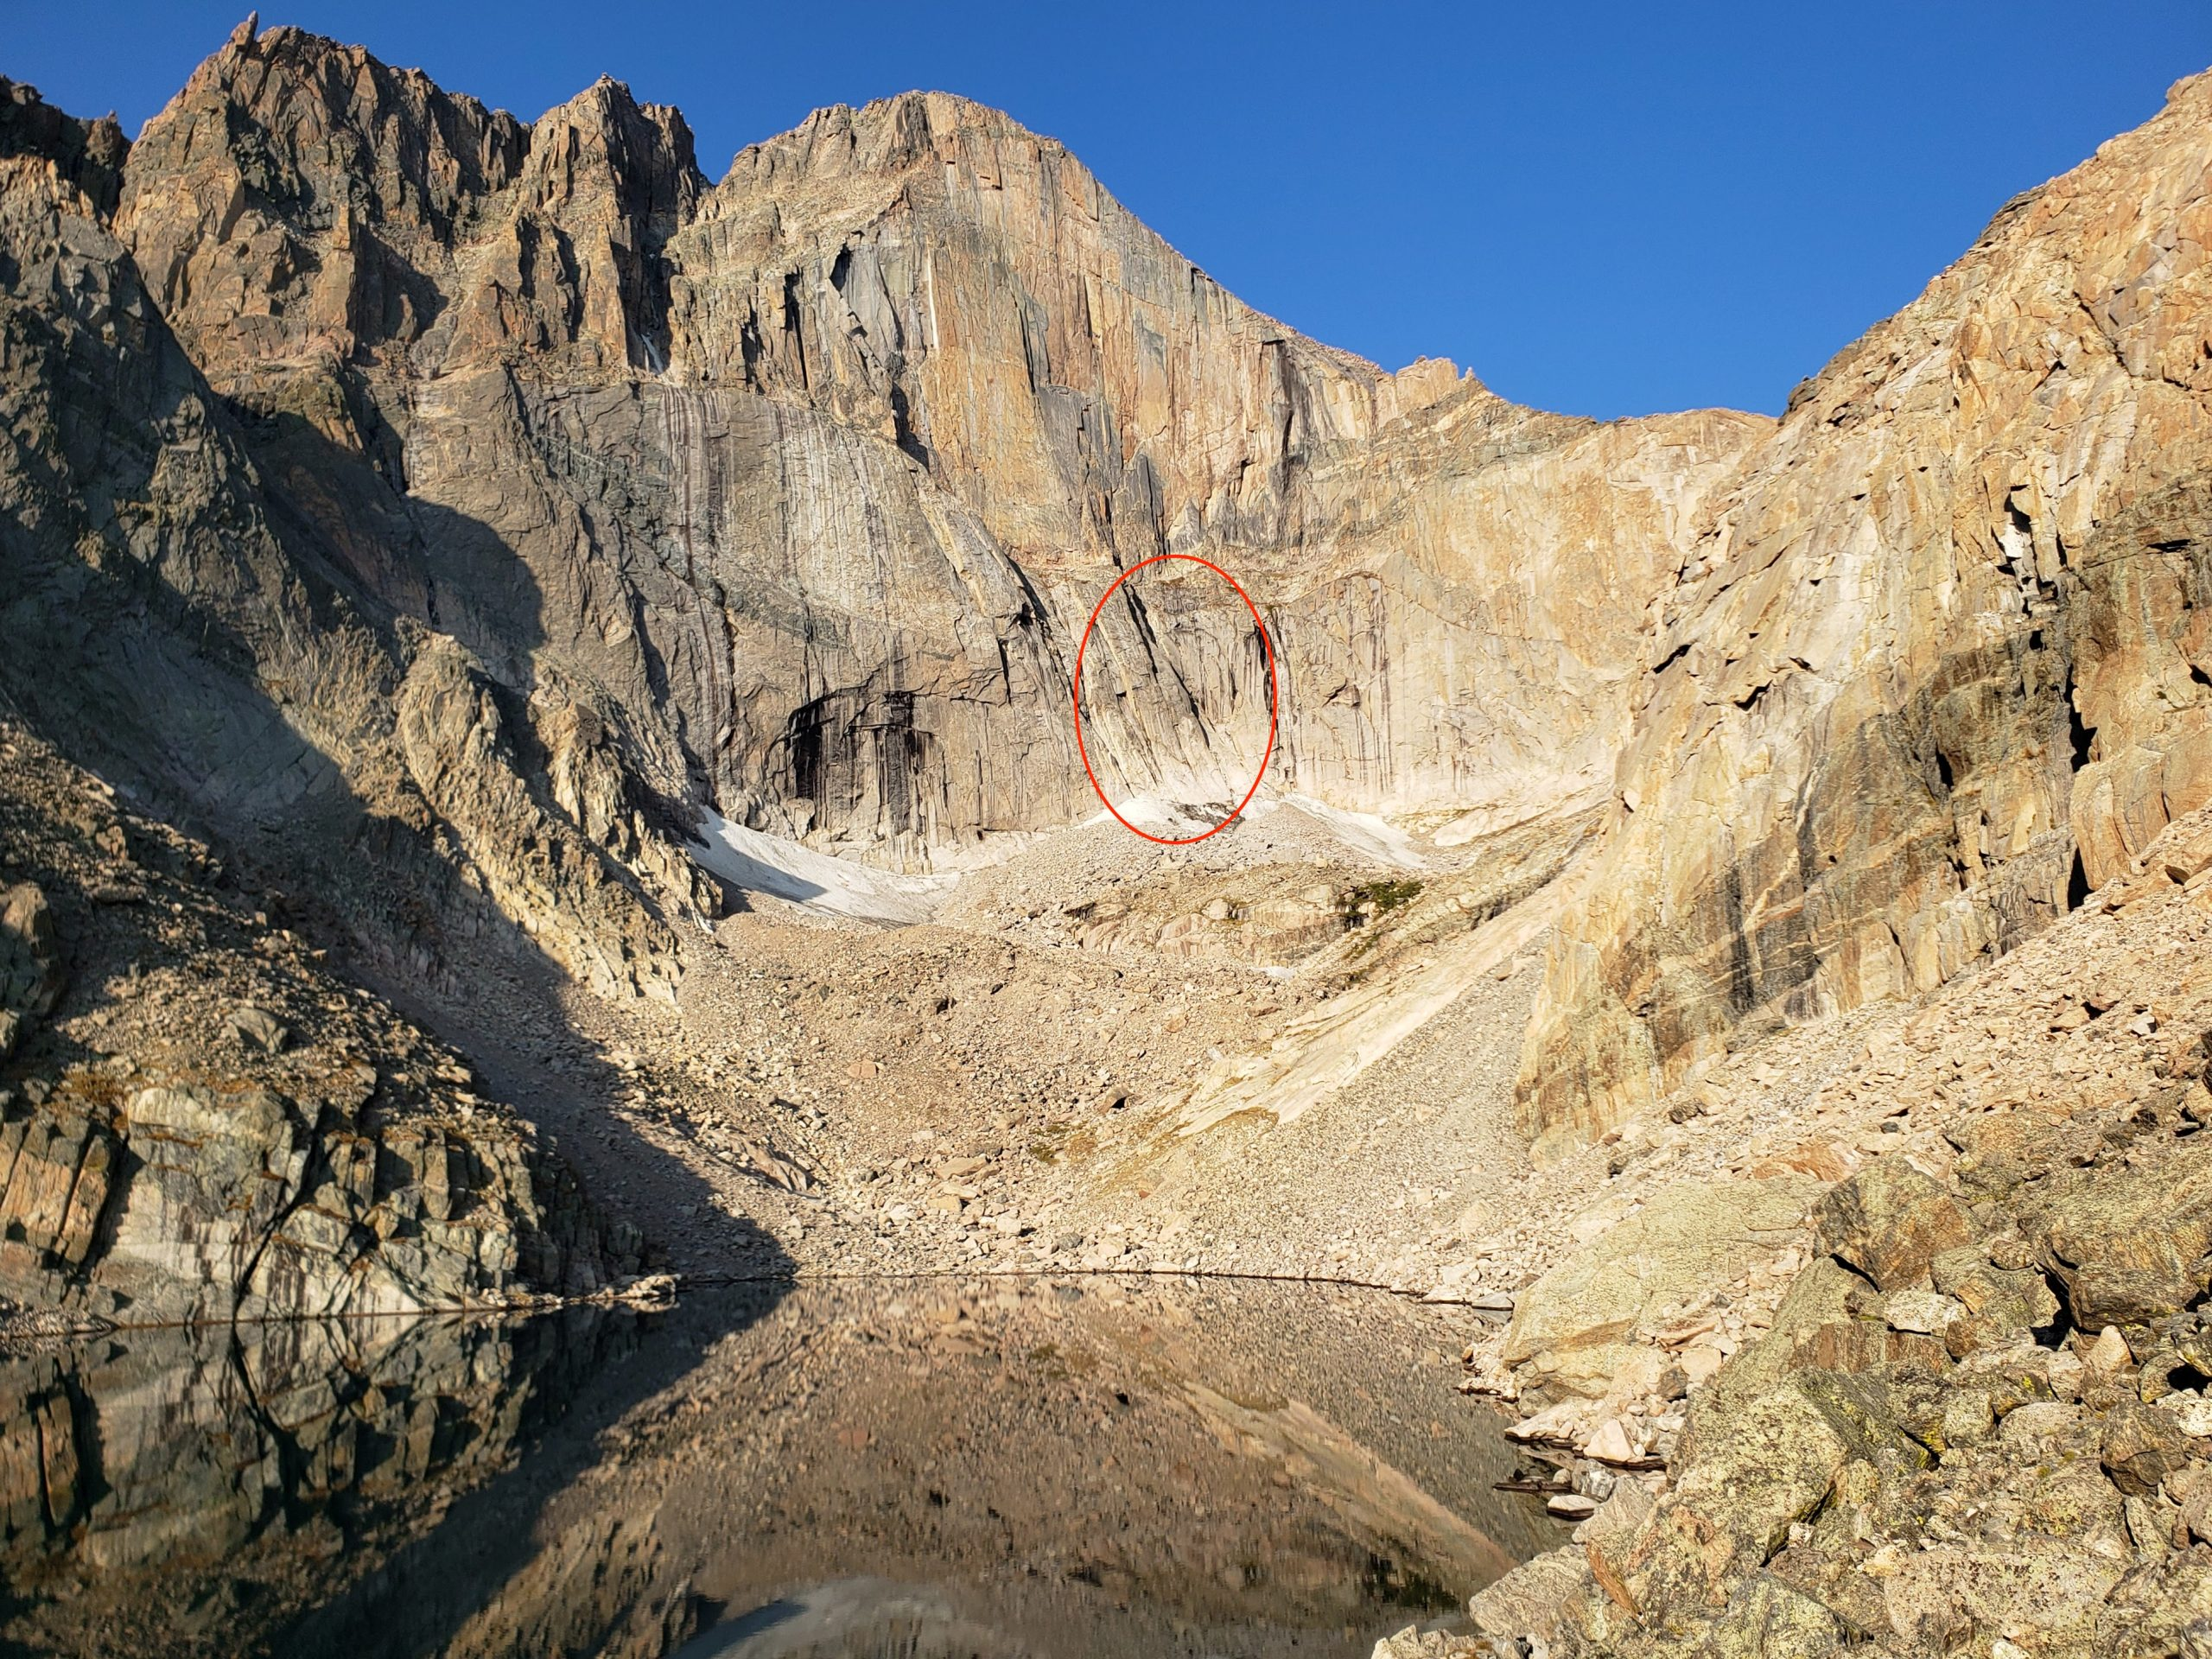 Annie Weinmann fell around 200 feet when she slipped soloing up the North Chimney on the East Face of Longs Peak. Photo: Annie Weinmann.